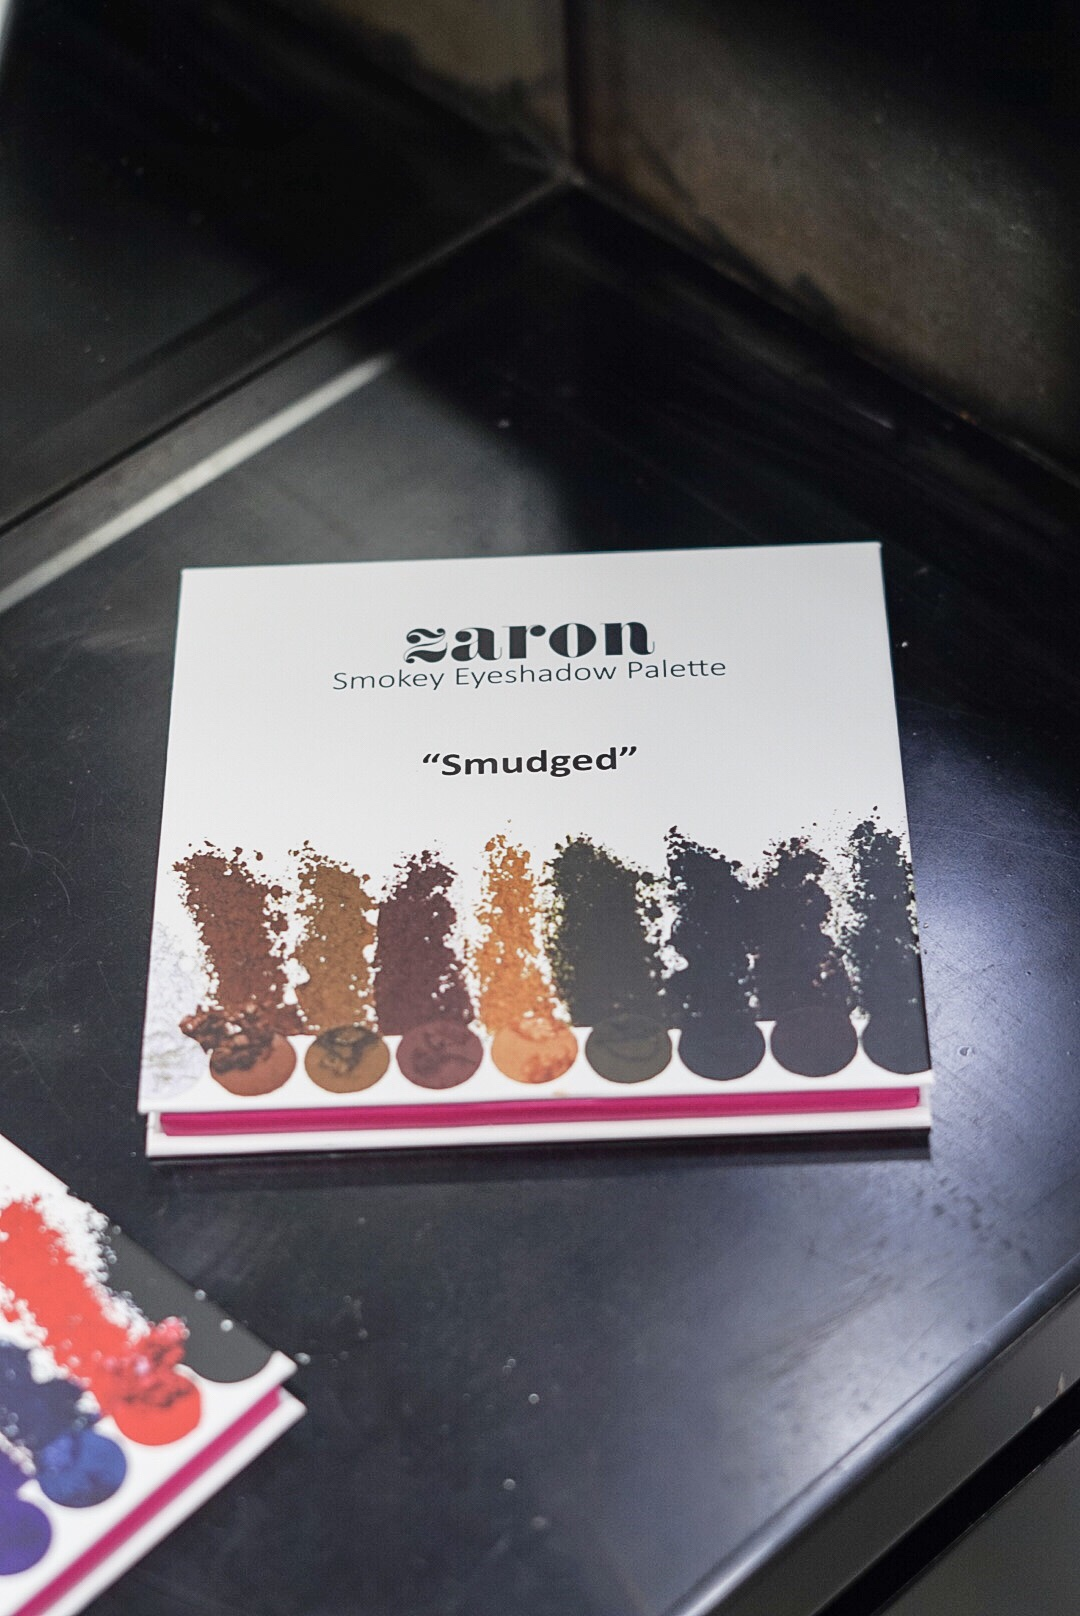 New Zaron 9-in-1 Palette in Smudged